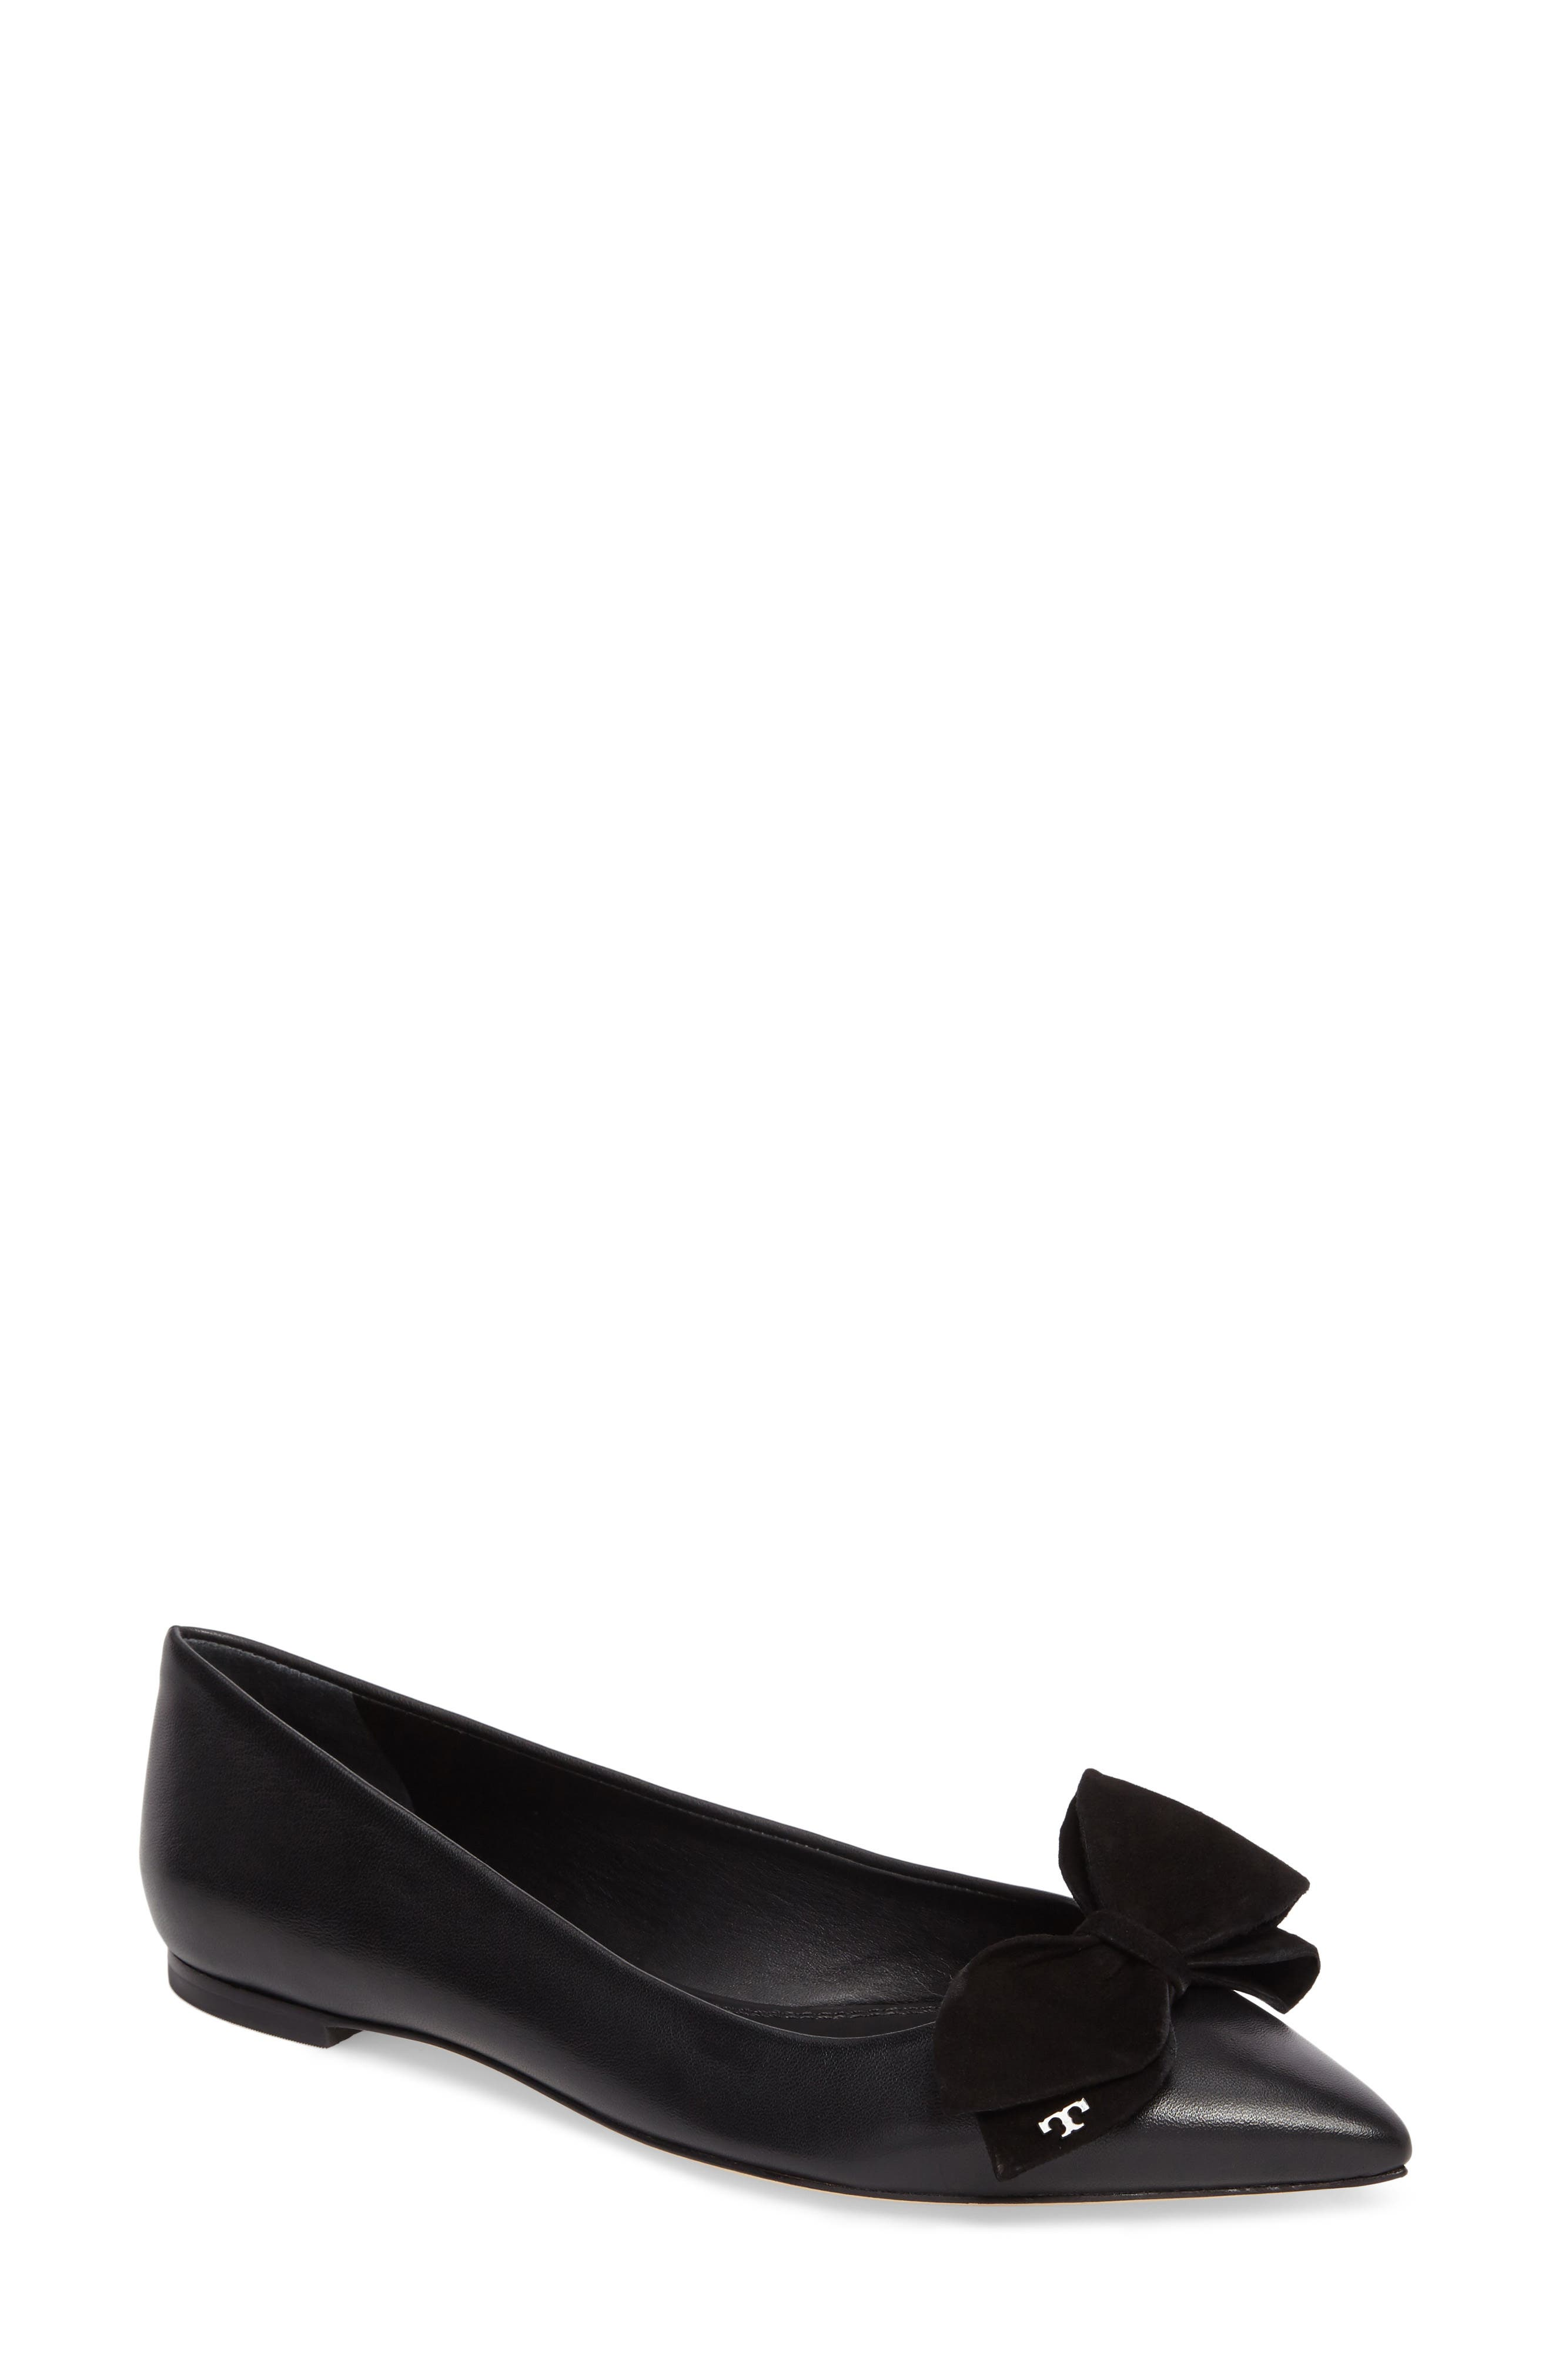 Rosalind Bow Pointy Toe Flat,                             Main thumbnail 1, color,                             BLACK LEATHER